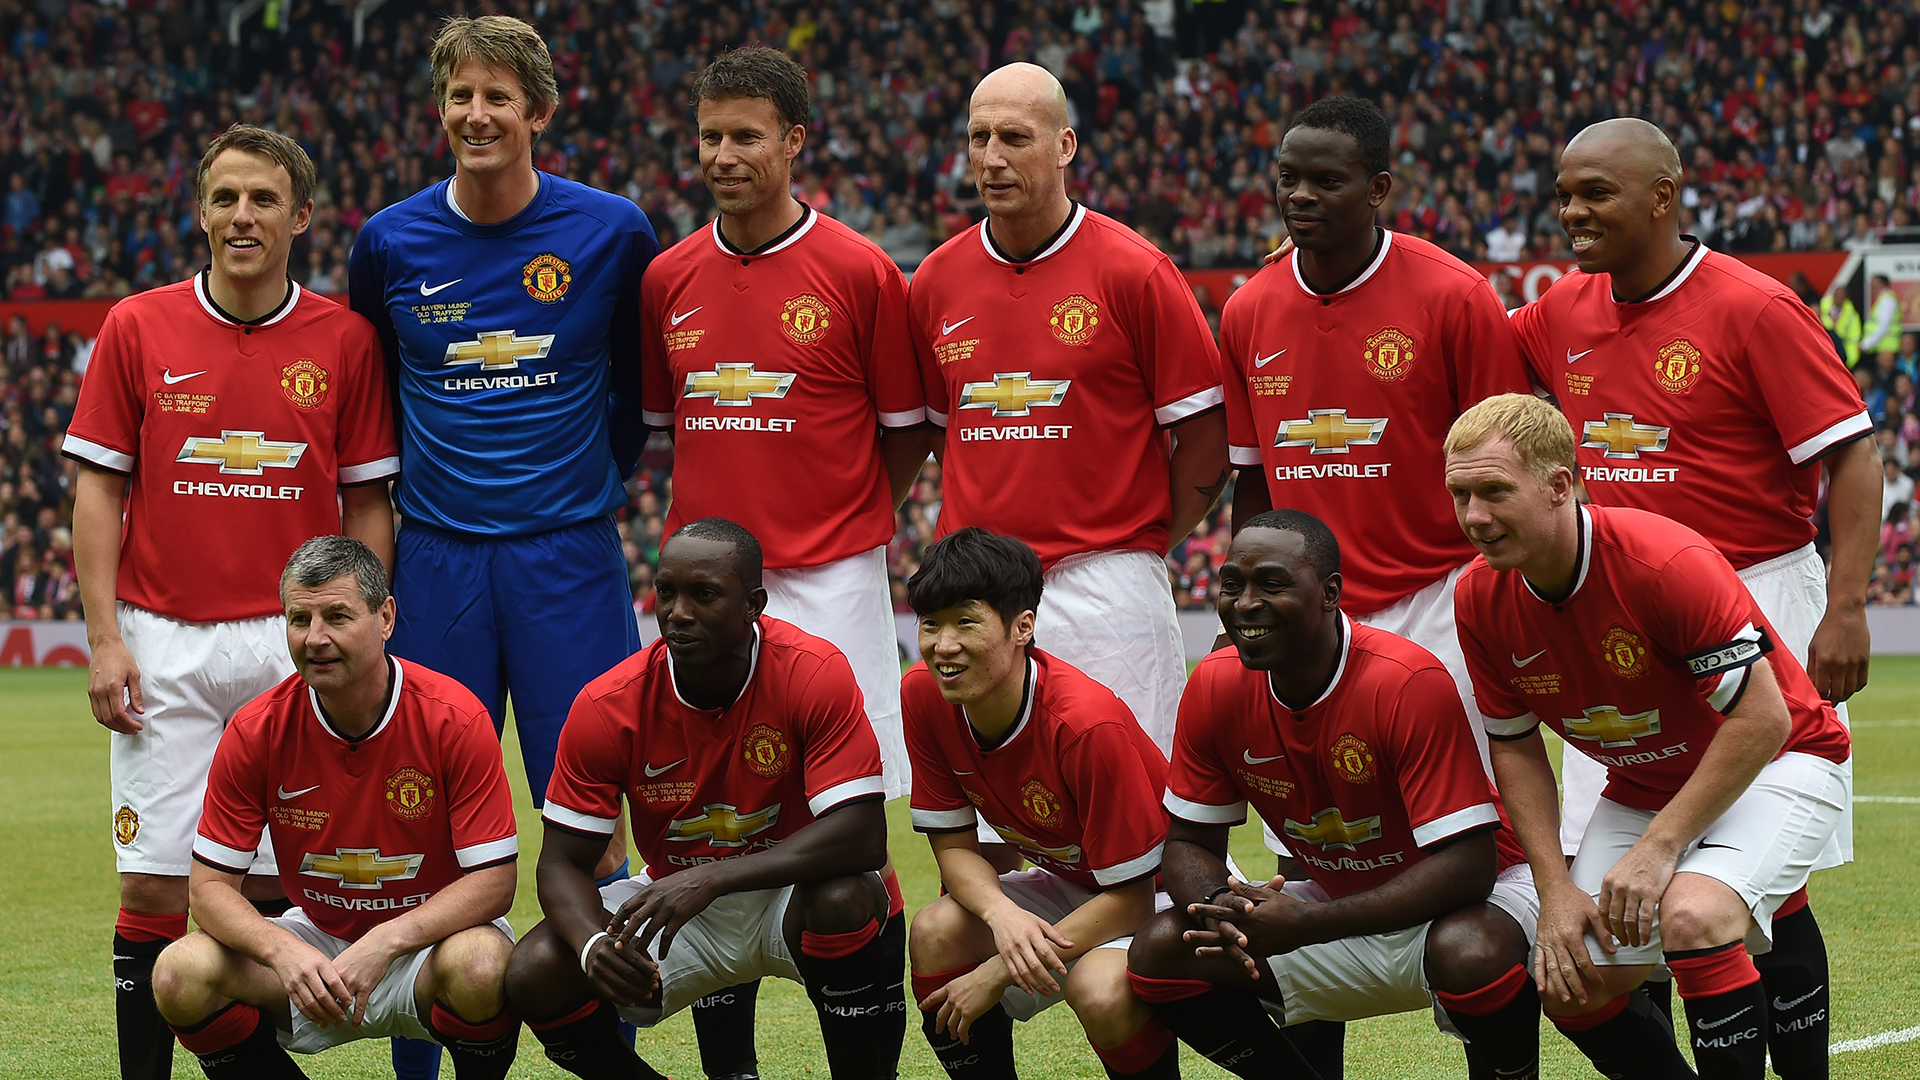 'He had everything' - Stam reveals the 1999 Man Utd treble winner he'd most like to sign